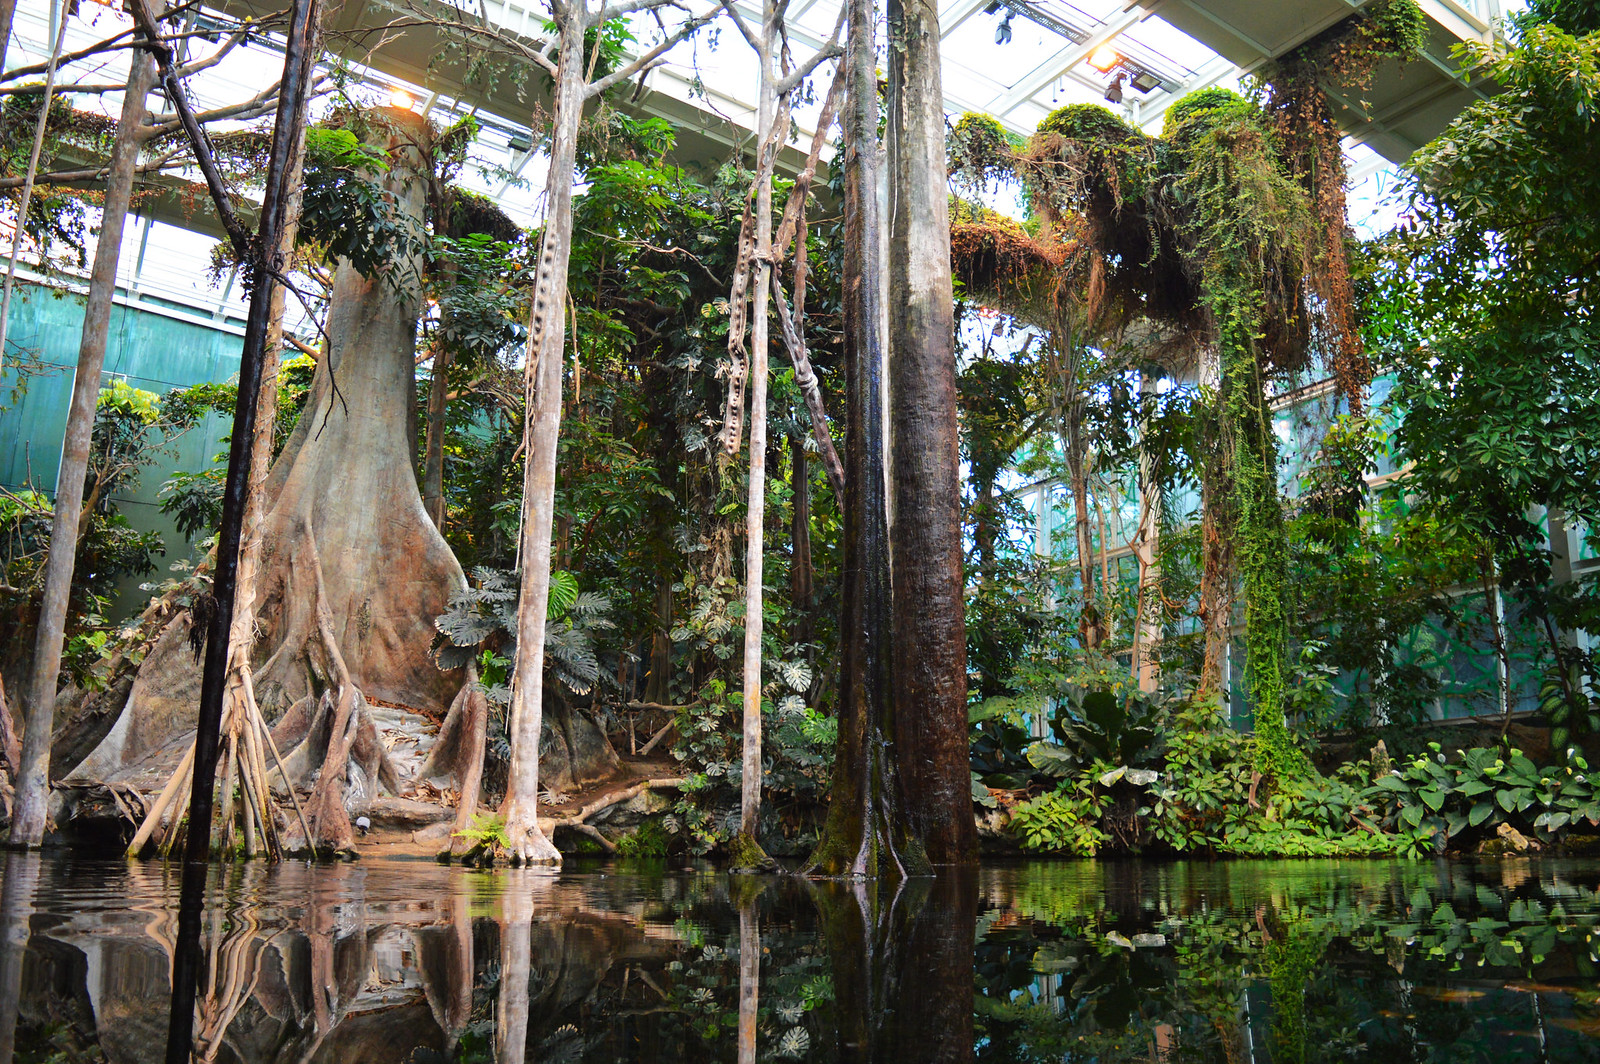 Rainforest in Barcelona